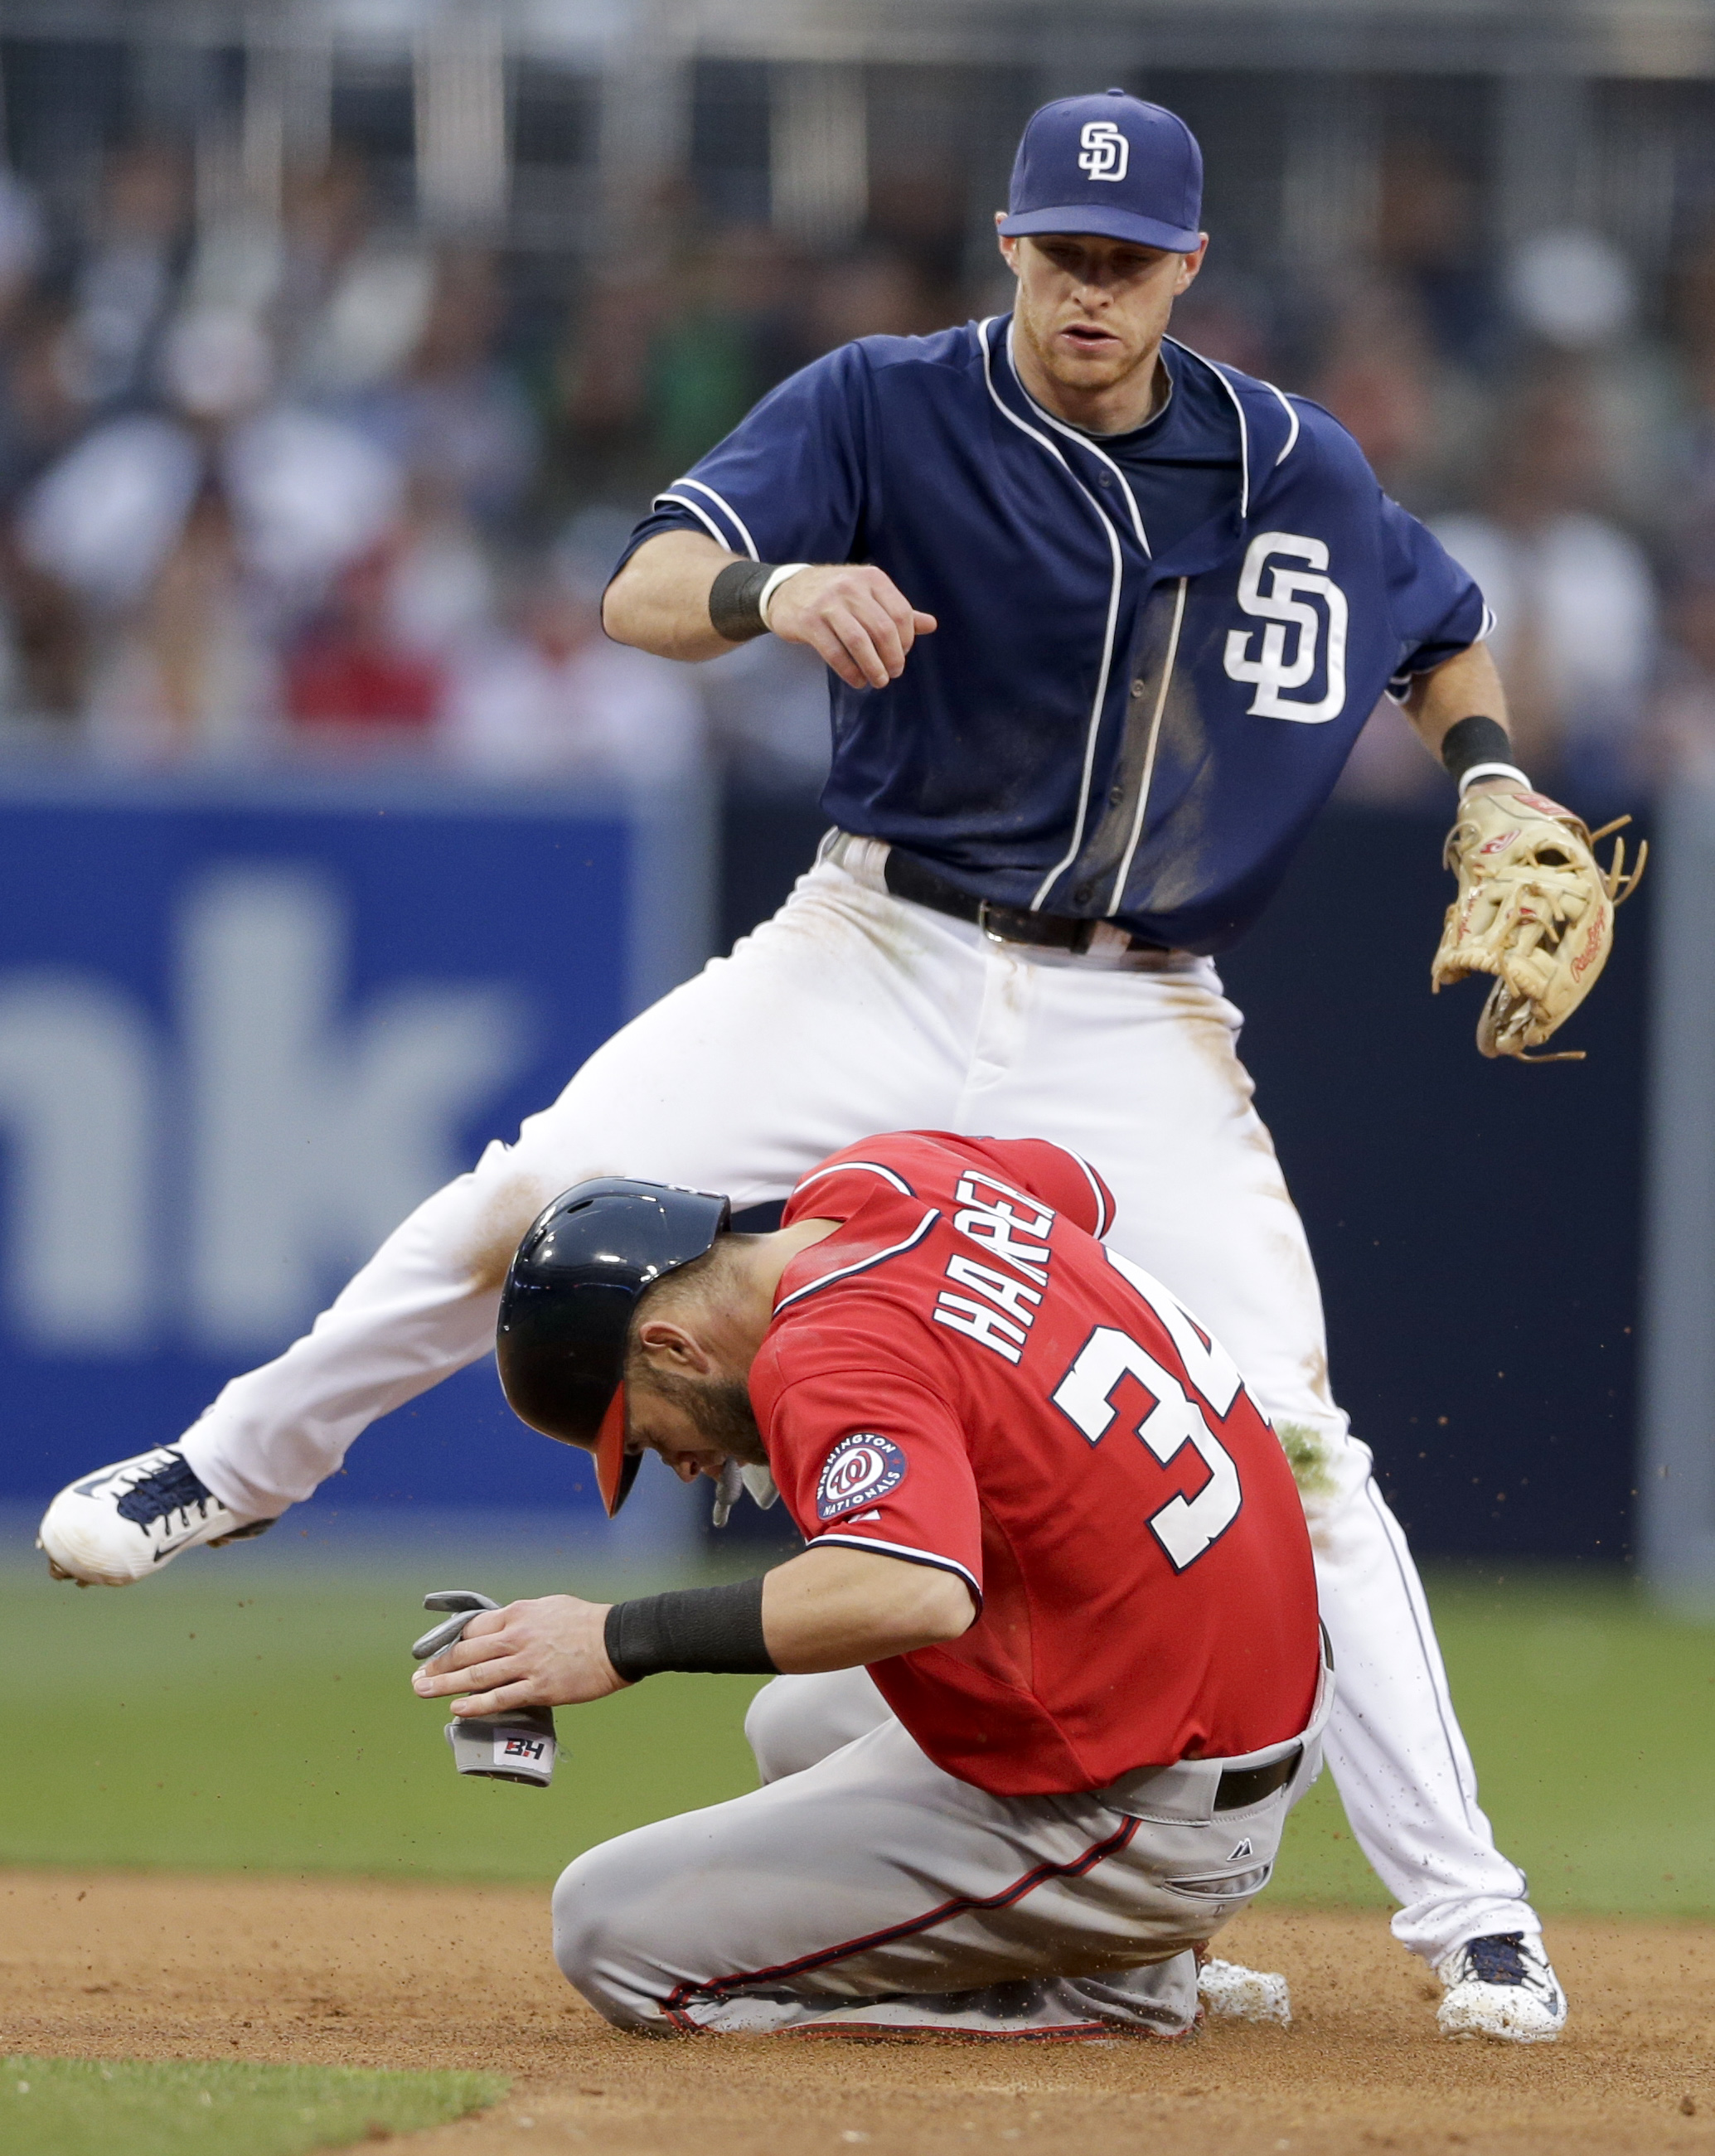 Washington Nationals' Bryce Harper, below, collides with San Diego Padres second baseman Cory Spangenberg, above, as he watches his throw to complete a double play during the fifth inning in a baseball game Saturday, May 16, 2015, in San Diego. (AP Photo/